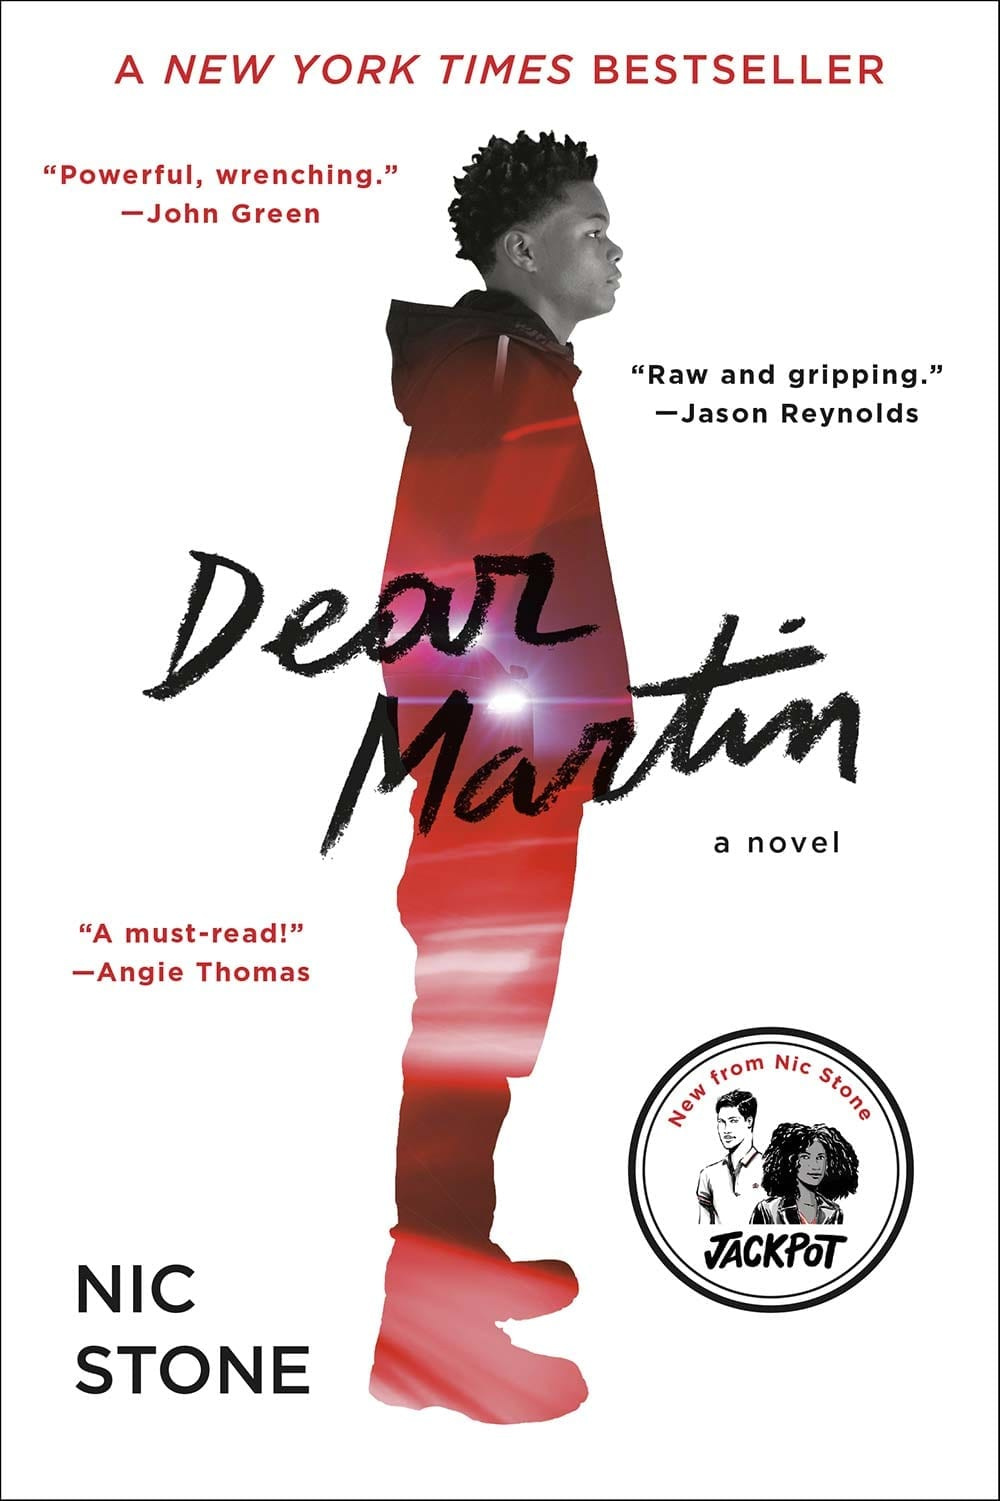 Justyce is heading to Yale and has a promising future, once he navigates growing up black in Dear Martin by Nic Stone.